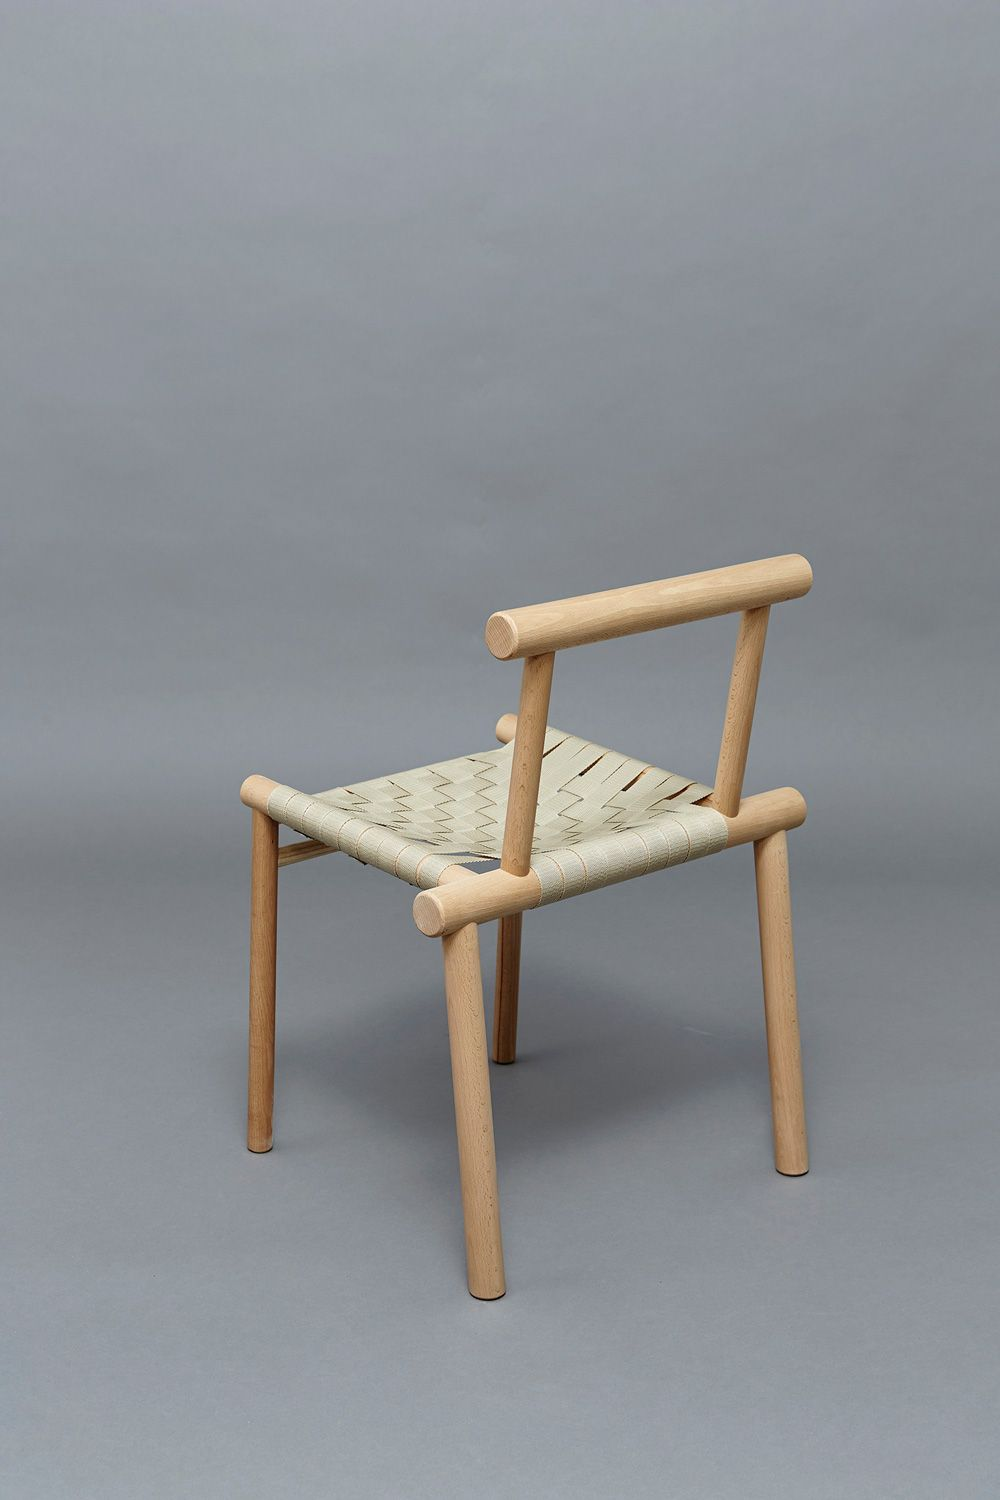 Rodular seating by james shaw dowel chairs stools furniture